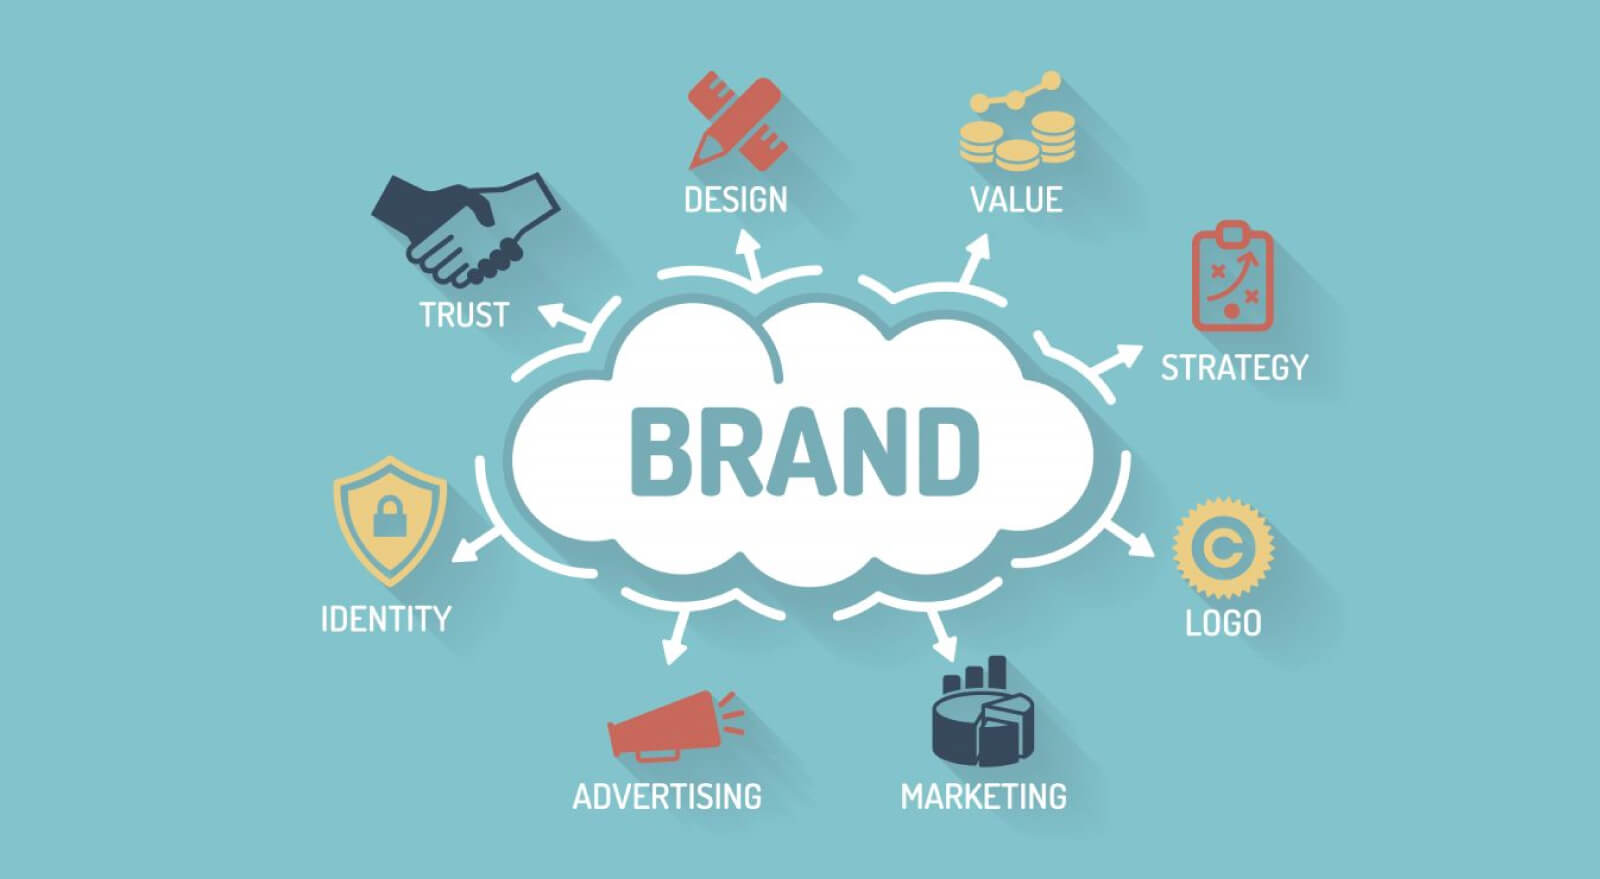 marketing plan for dentists defined brand identity